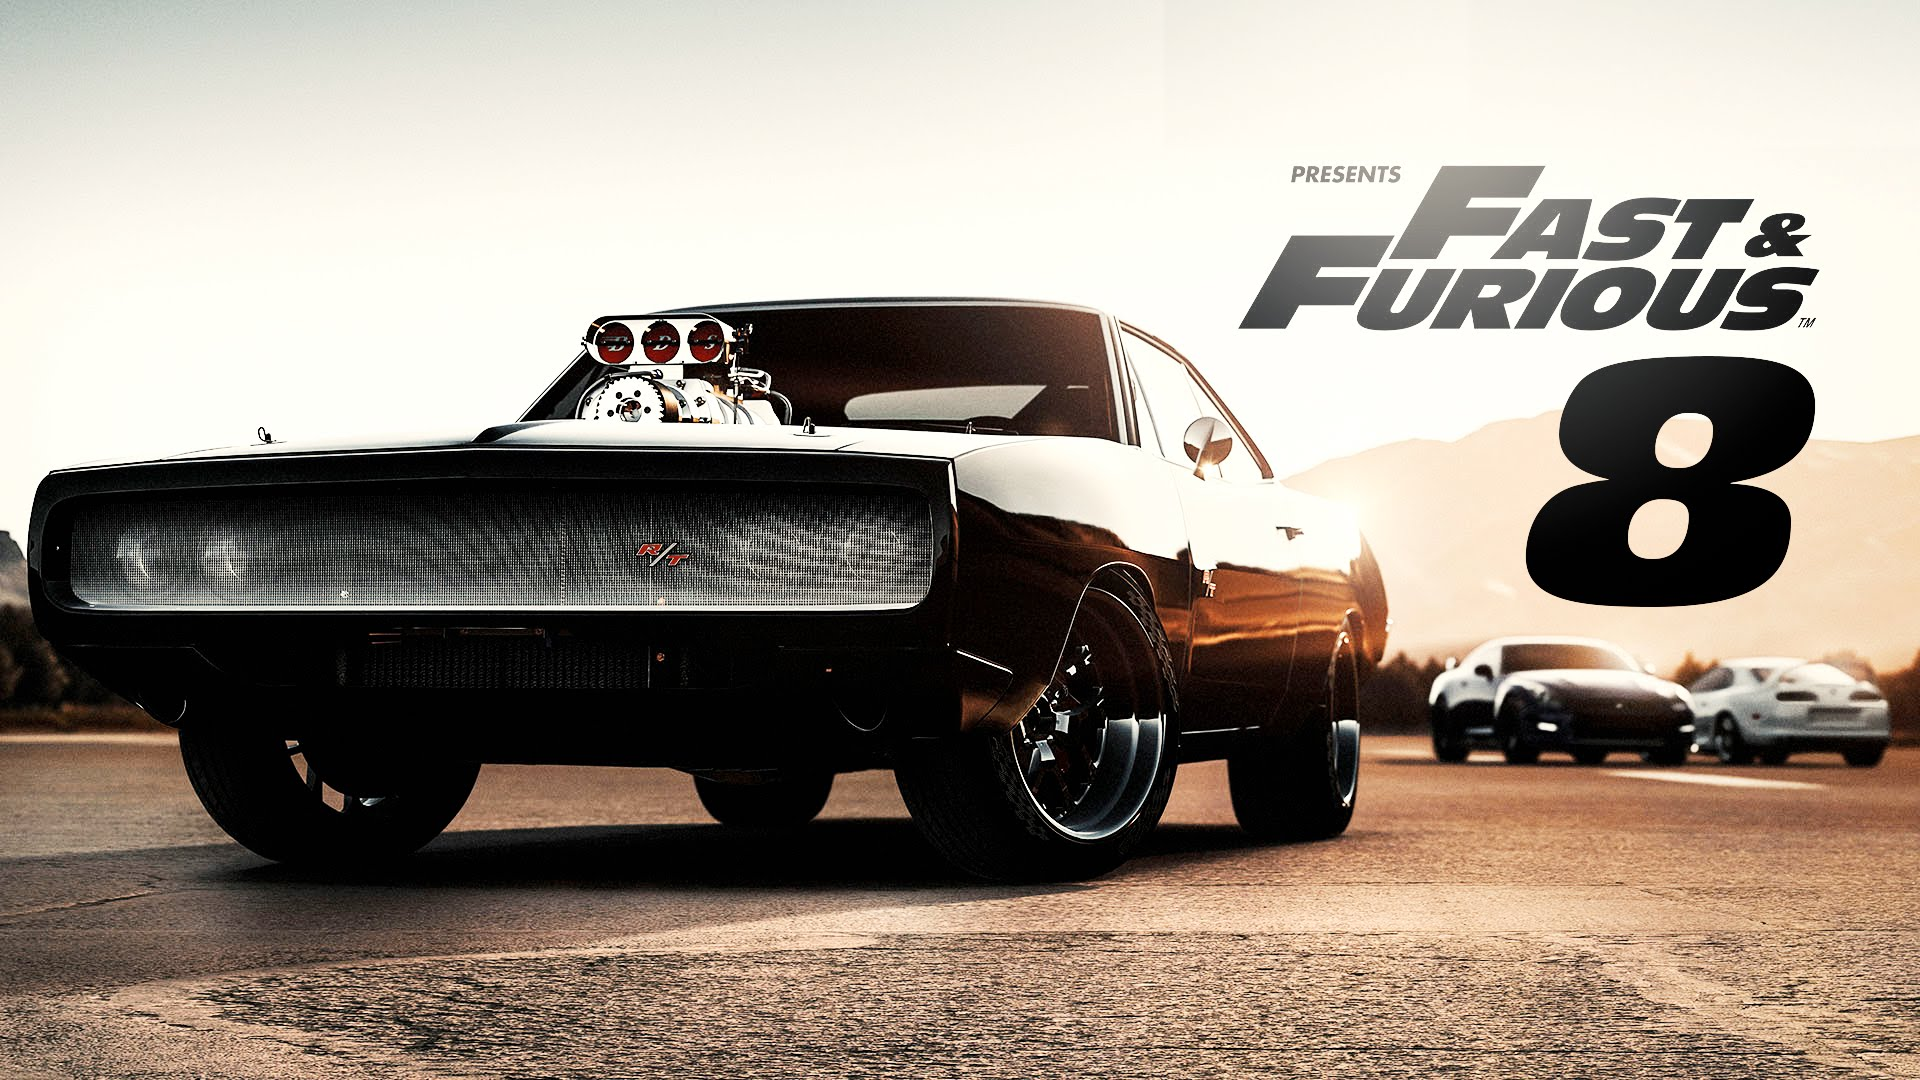 The Fate of the Furious Wallpapers hd